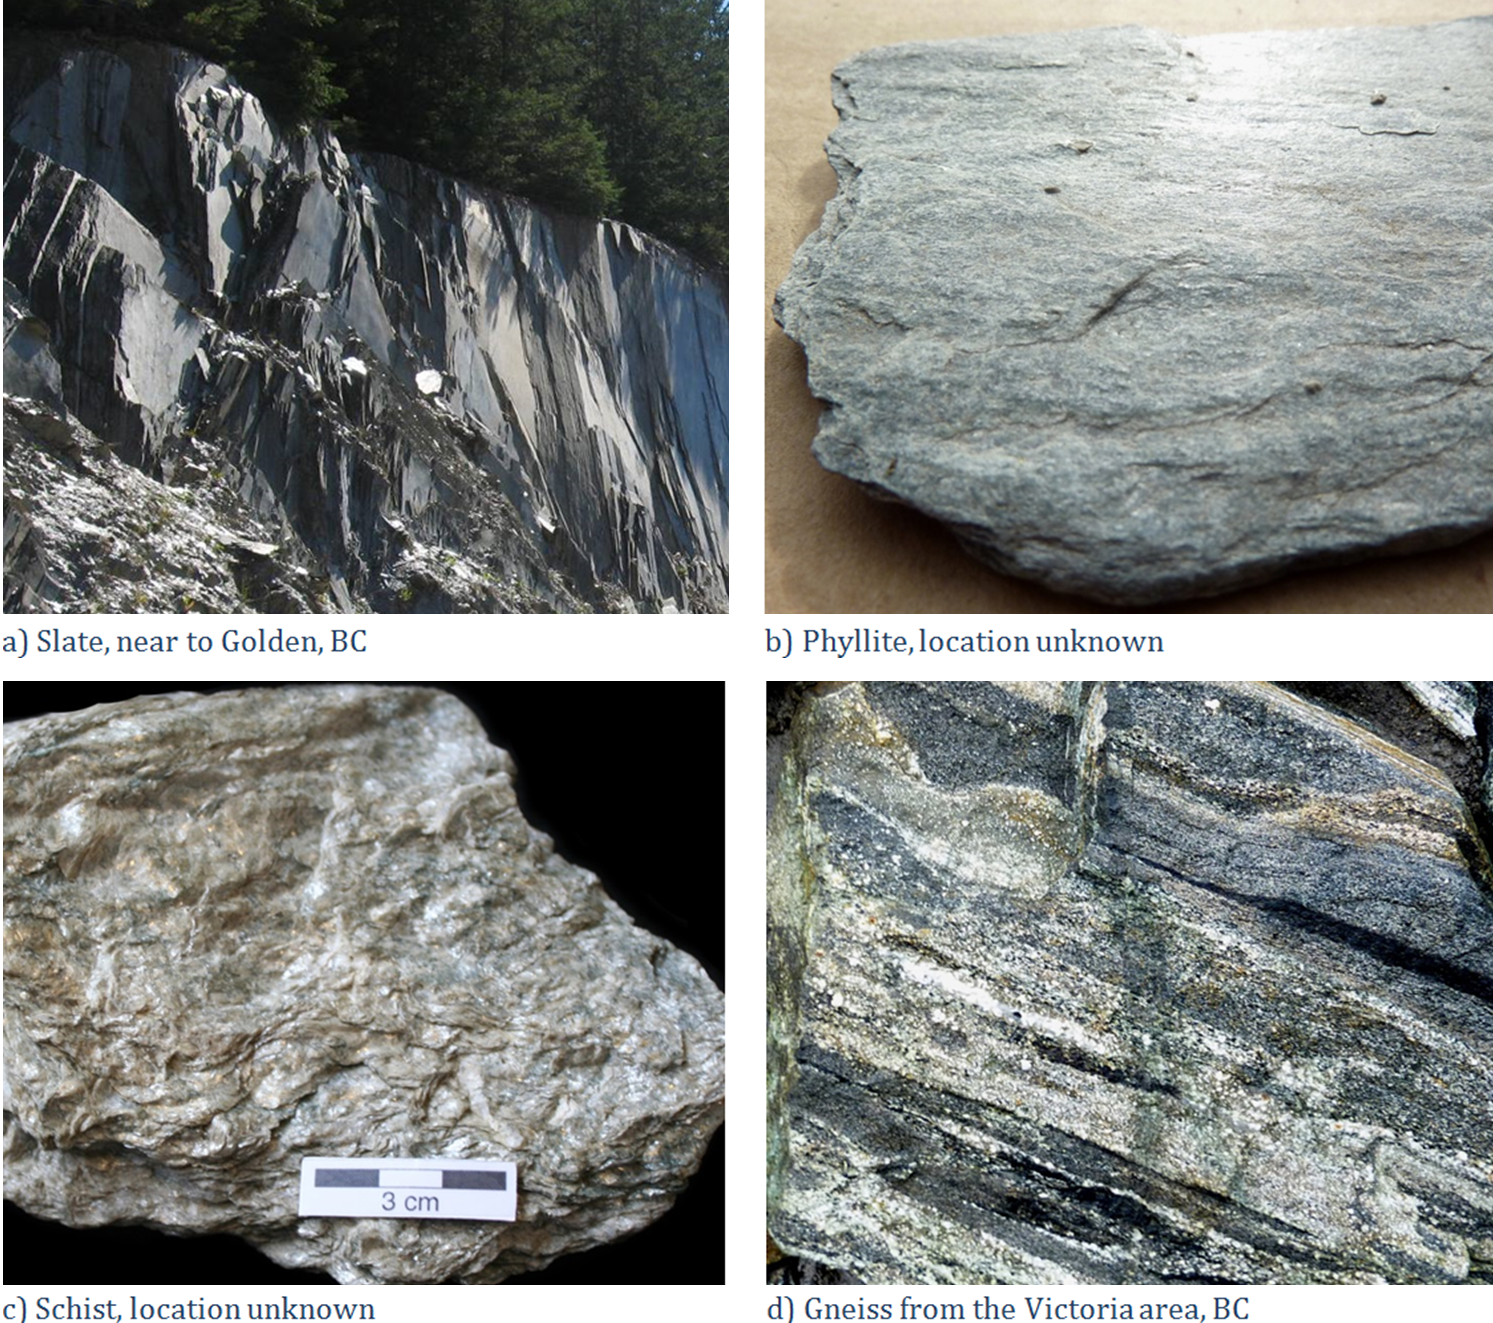 Figure 6.2.4: Examples of foliated metamorphic rocks: (A) Slate, (B) Phyllite, (C) Schist, (D) Gneiss.